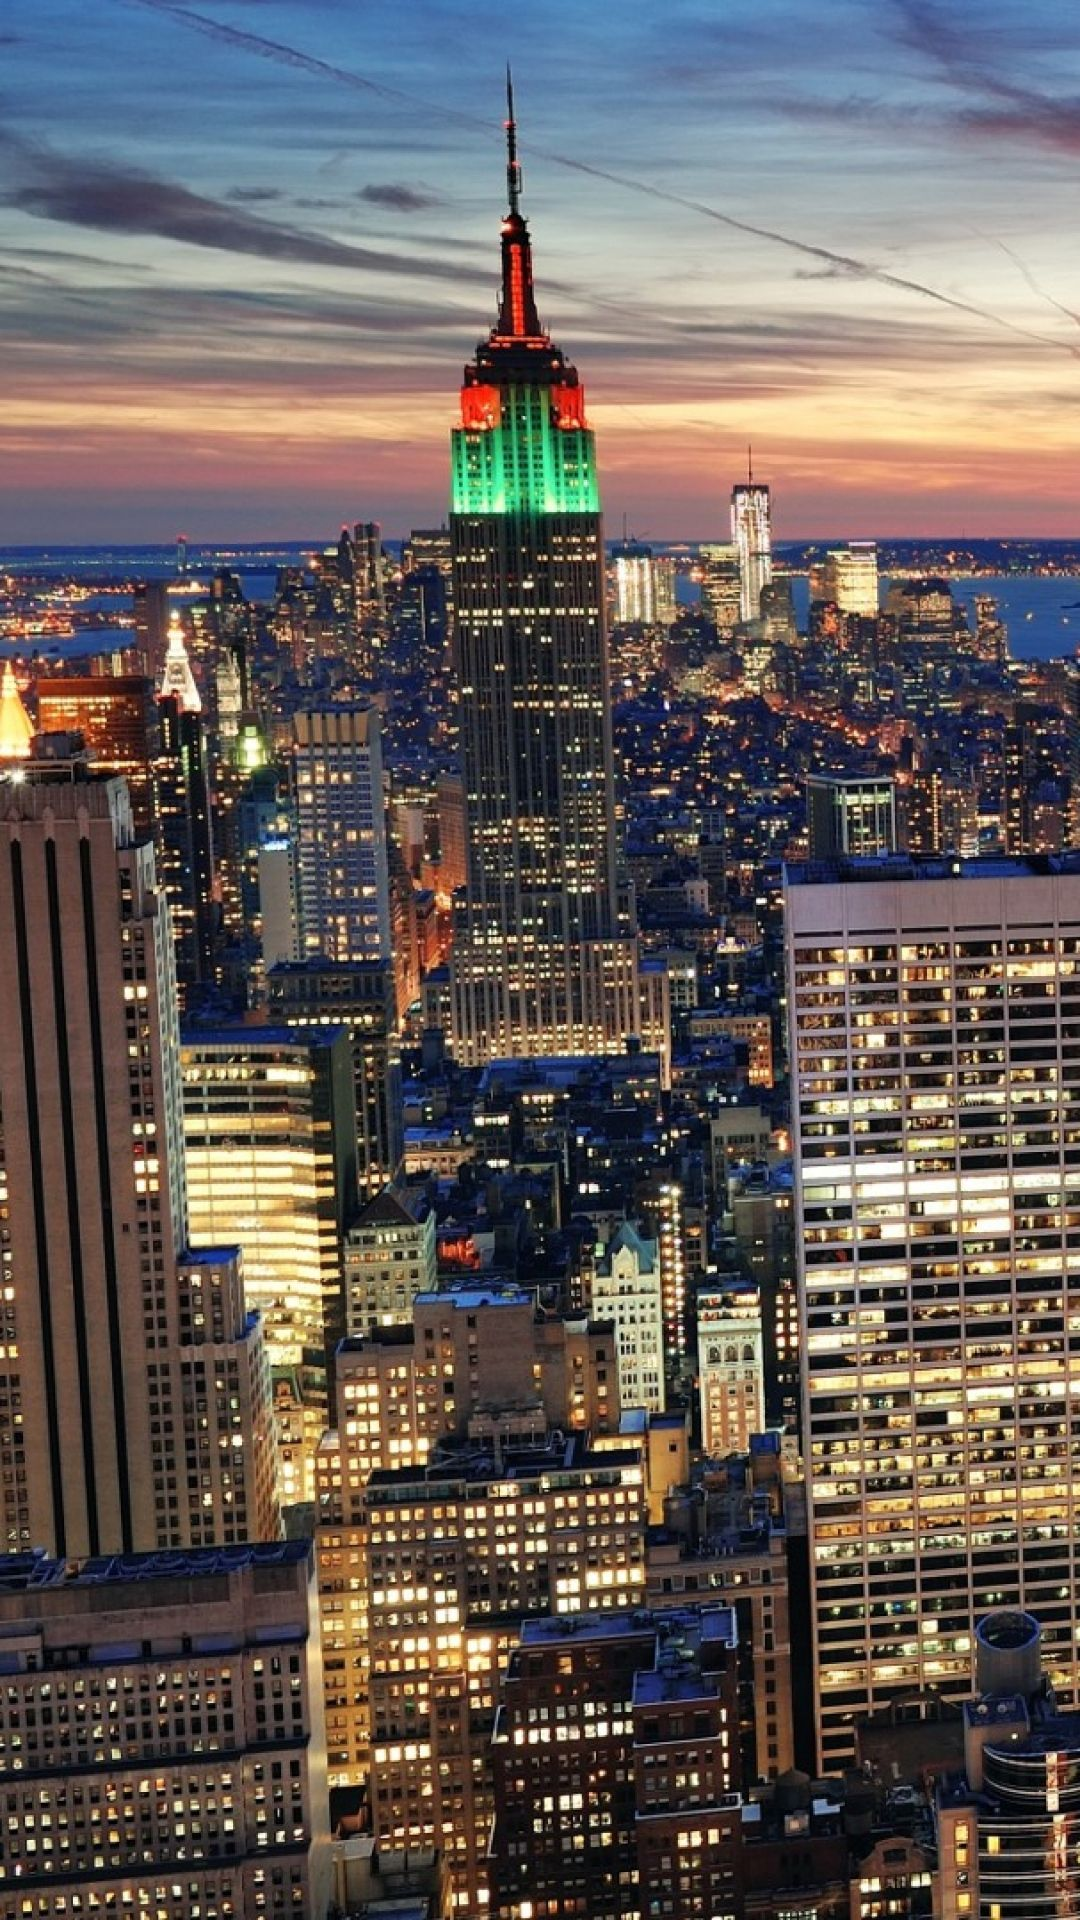 Download Wallpaper 1080x1920 New York City Top View Sony Xperia Z1 Zl Z Samsung Galaxy S4 Htc One Hd New York Wallpaper Chicago Wallpaper City Wallpaper